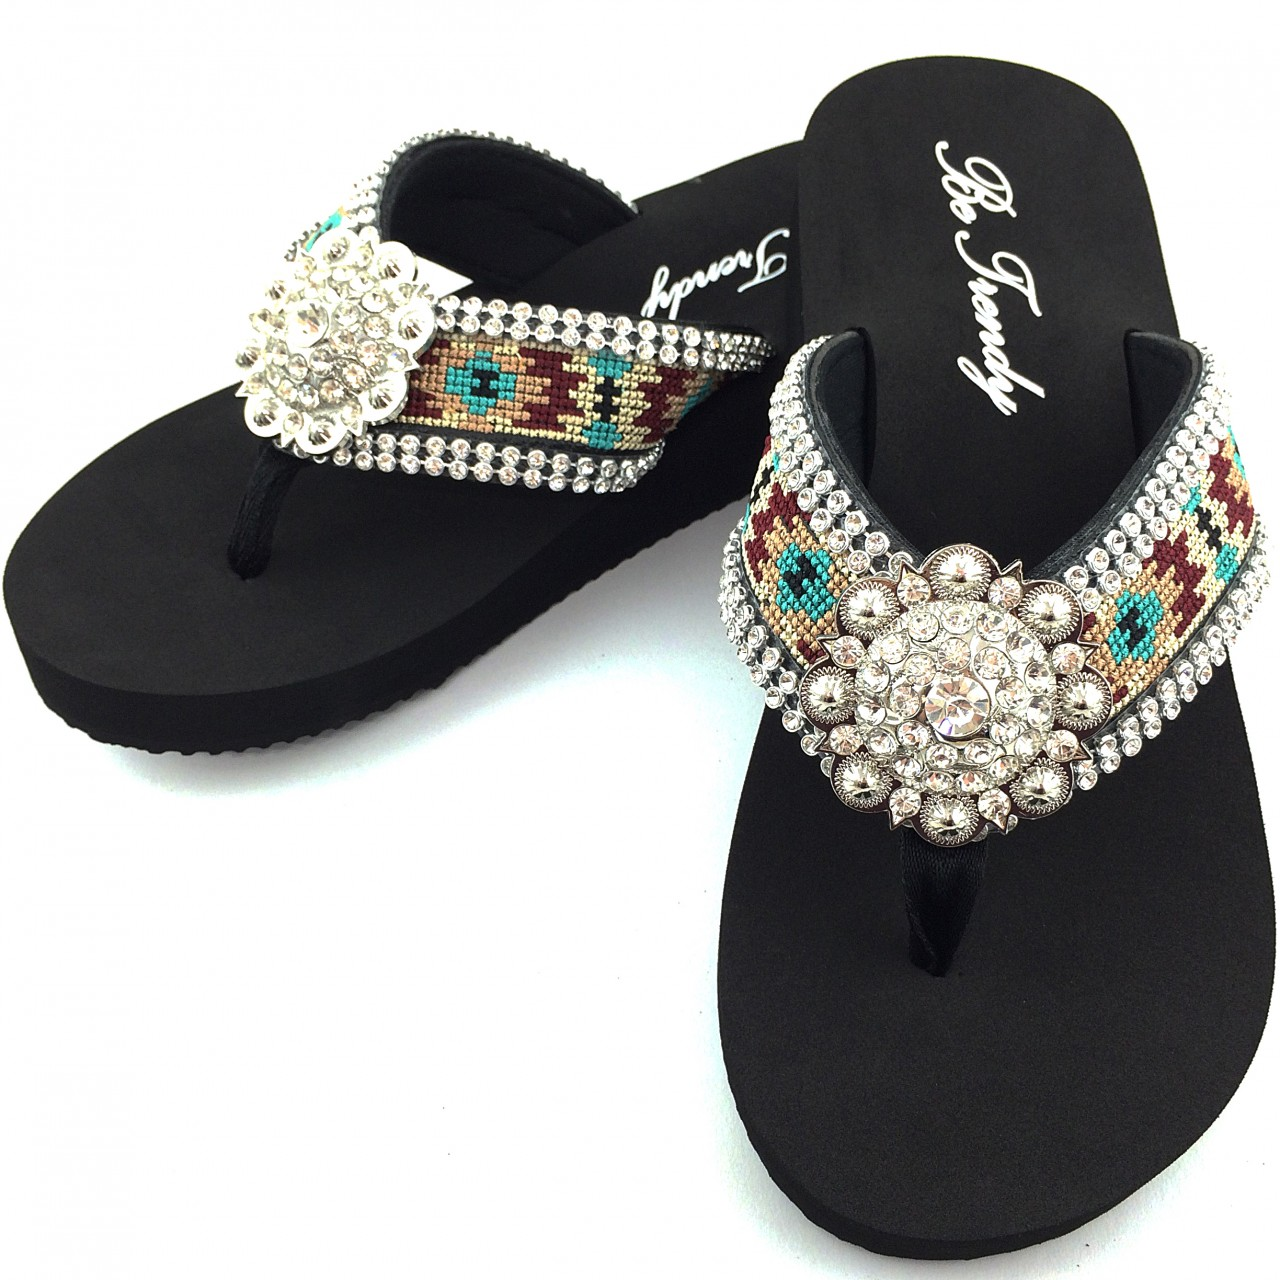 76e02a65a2c0 WFF000017 Wholesale Rhinestone Western Cowgirl Flip Flops with Concho  Embroidery. Image 1